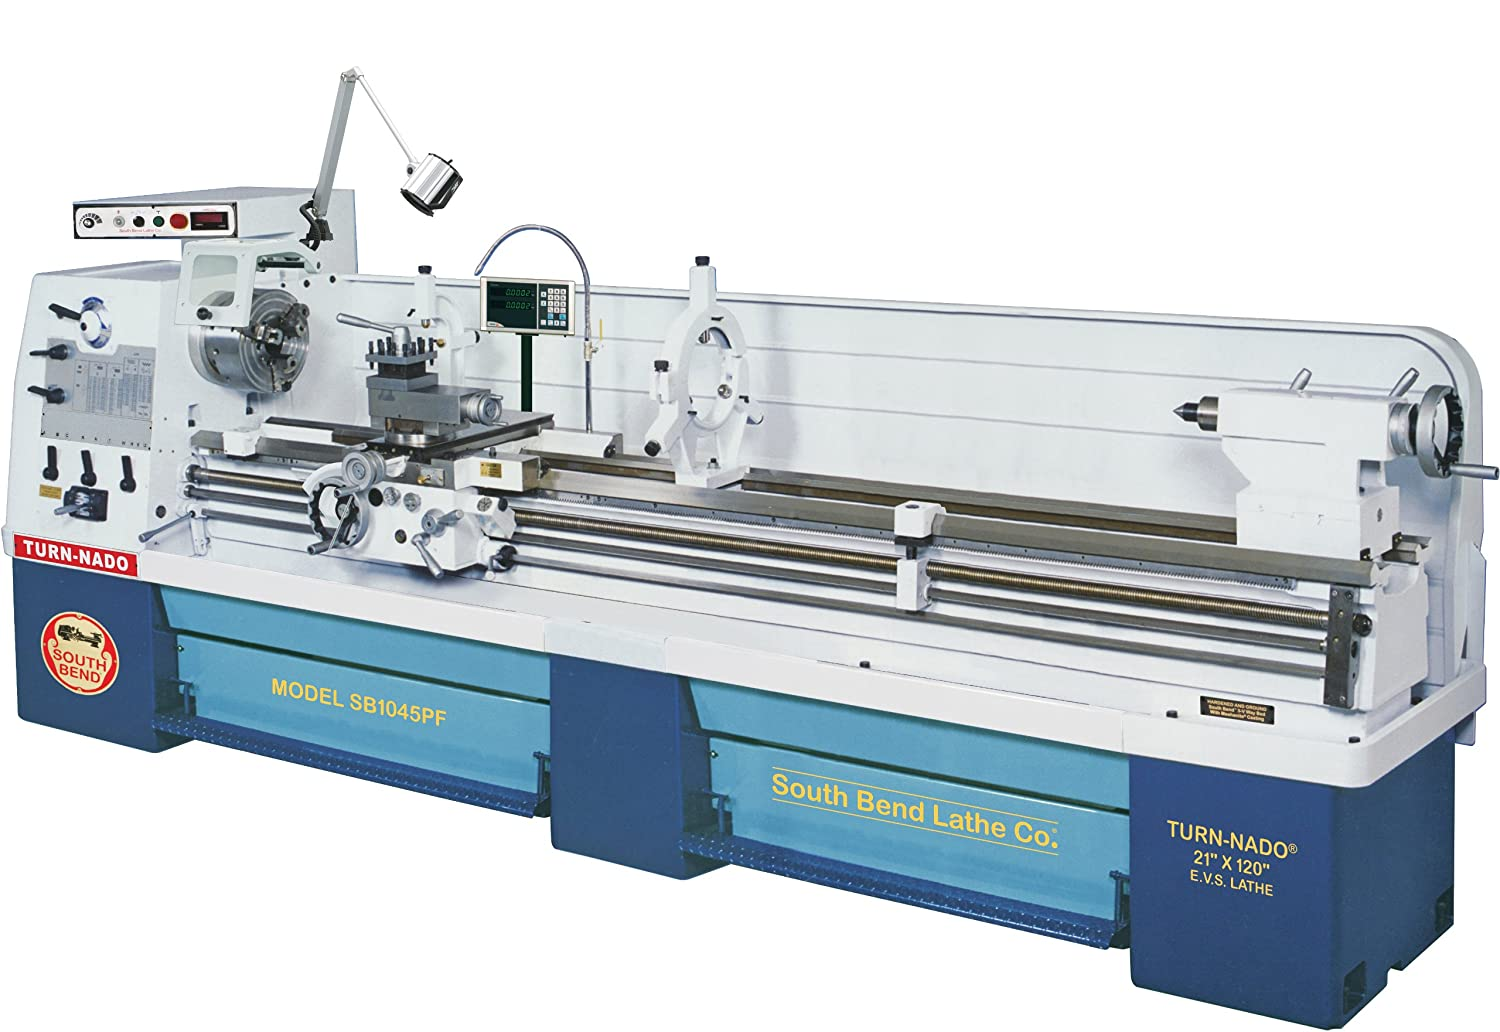 South Bend Lathe SB1045PF 21-Inch by 120-Inch EVS Lathe with